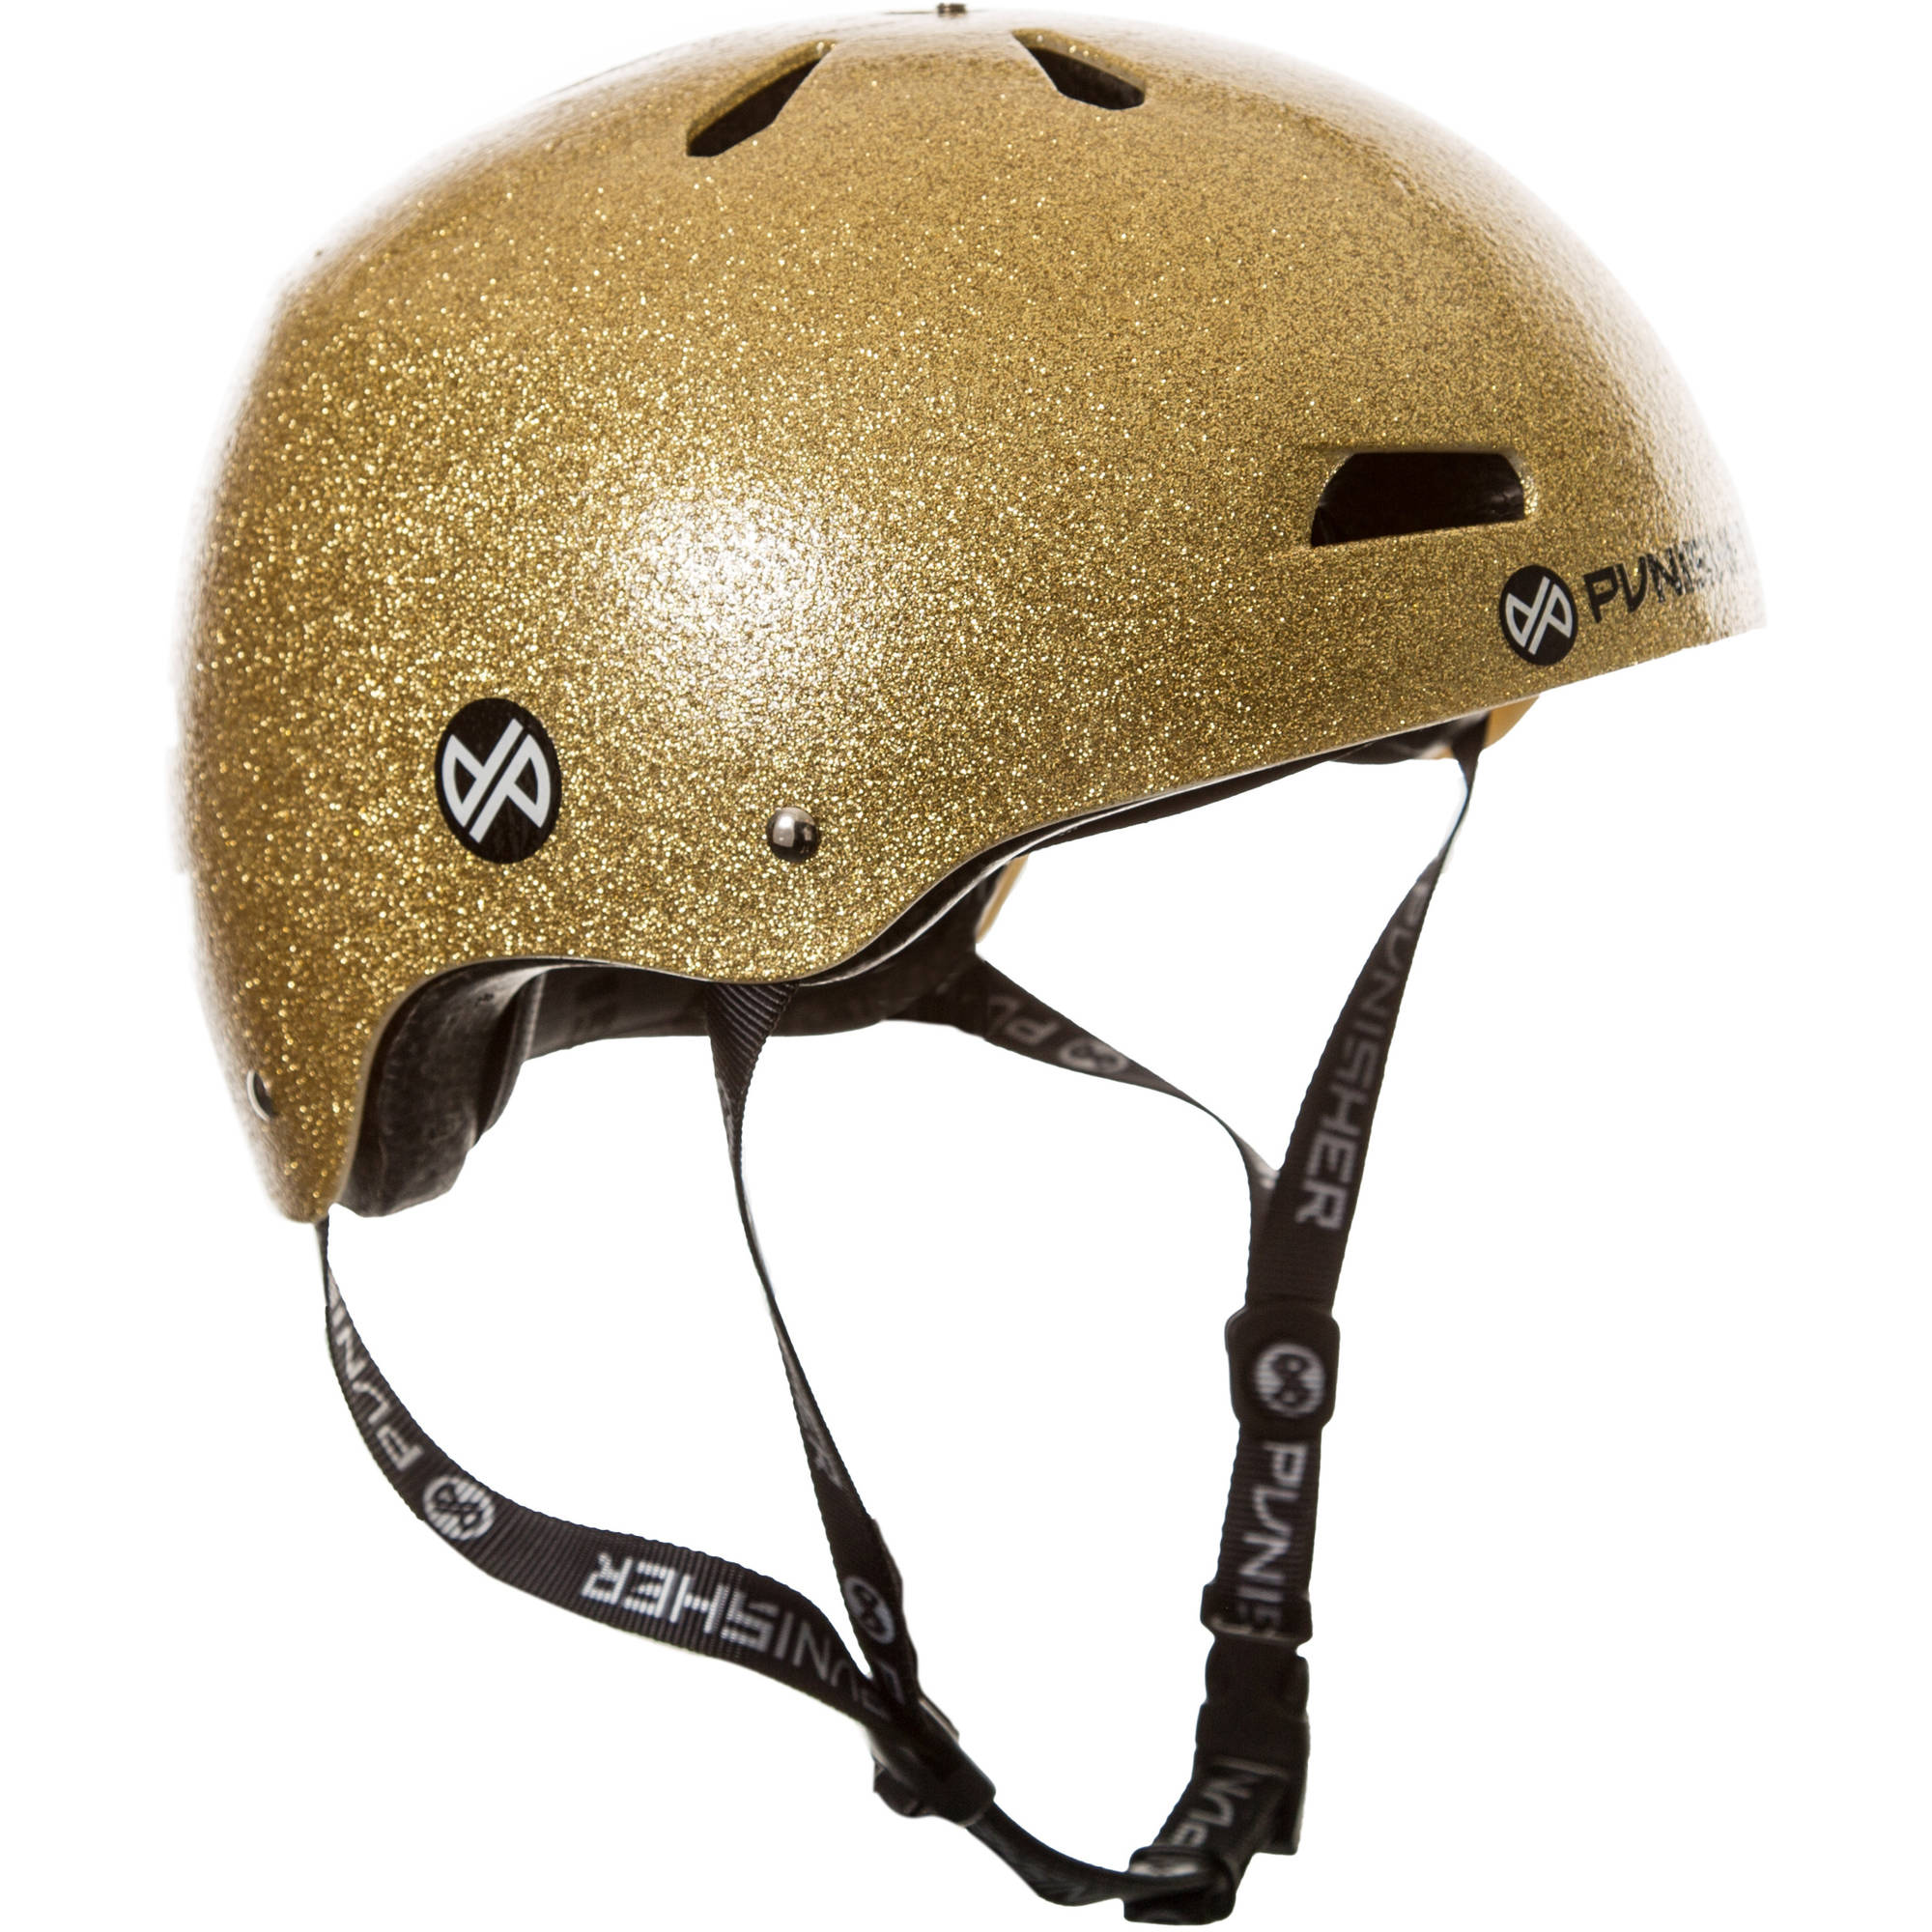 Punisher Skateboards Pro 13-Vent Gold Flake Dual Safety Certified BMX Bike and Skateboard Helmet, Youth Medium... by Punisher Skateboards